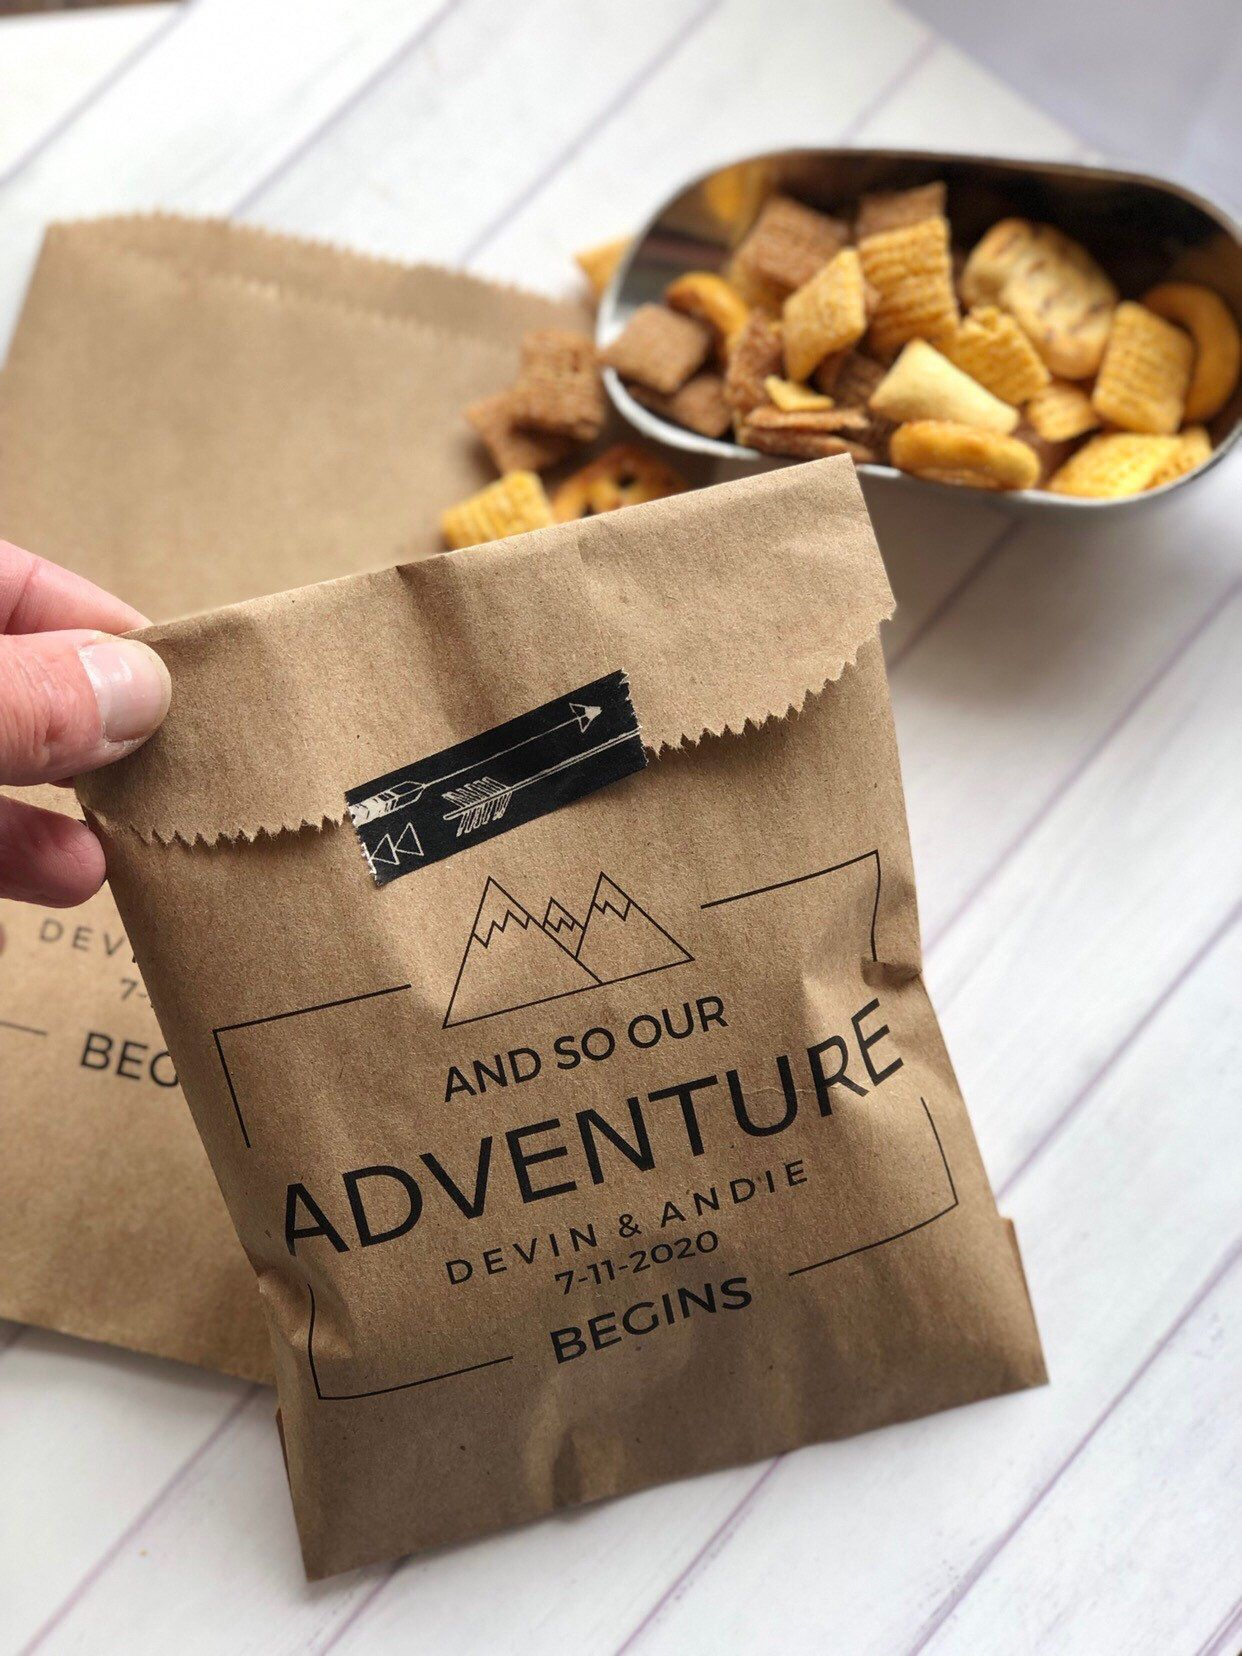 Trail Mix Bar Bags, Popcorn Bags, Wedding Snack Bags